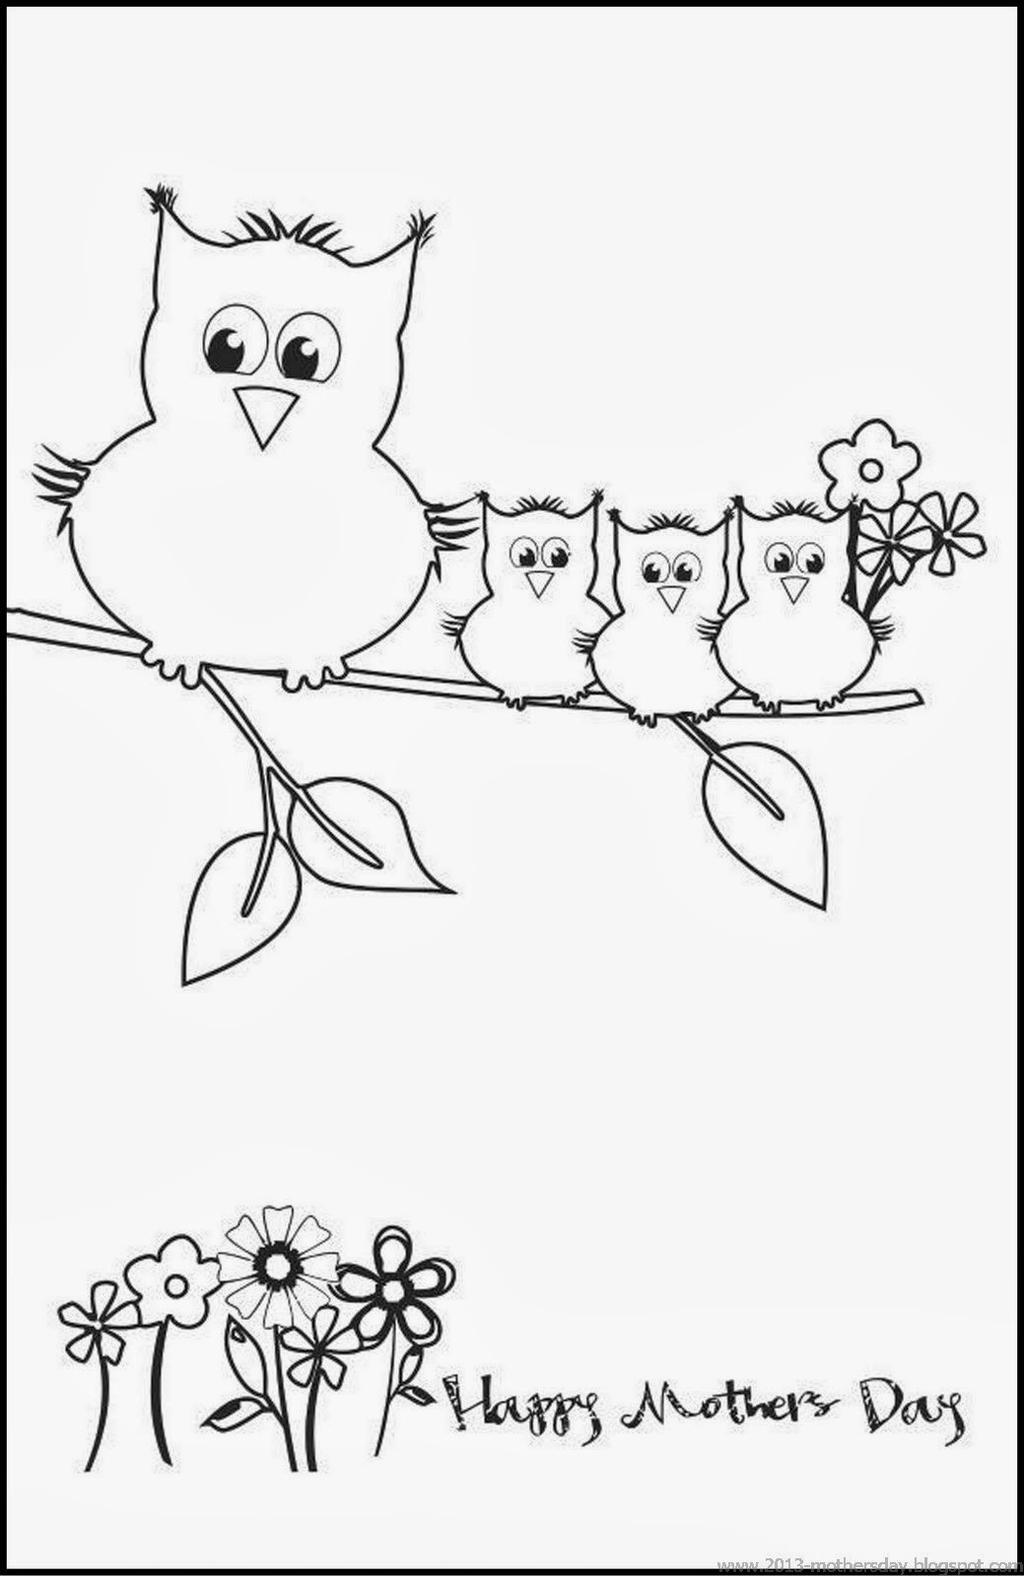 Free Thank You For Your Service Coloring Pages Birds Card printable